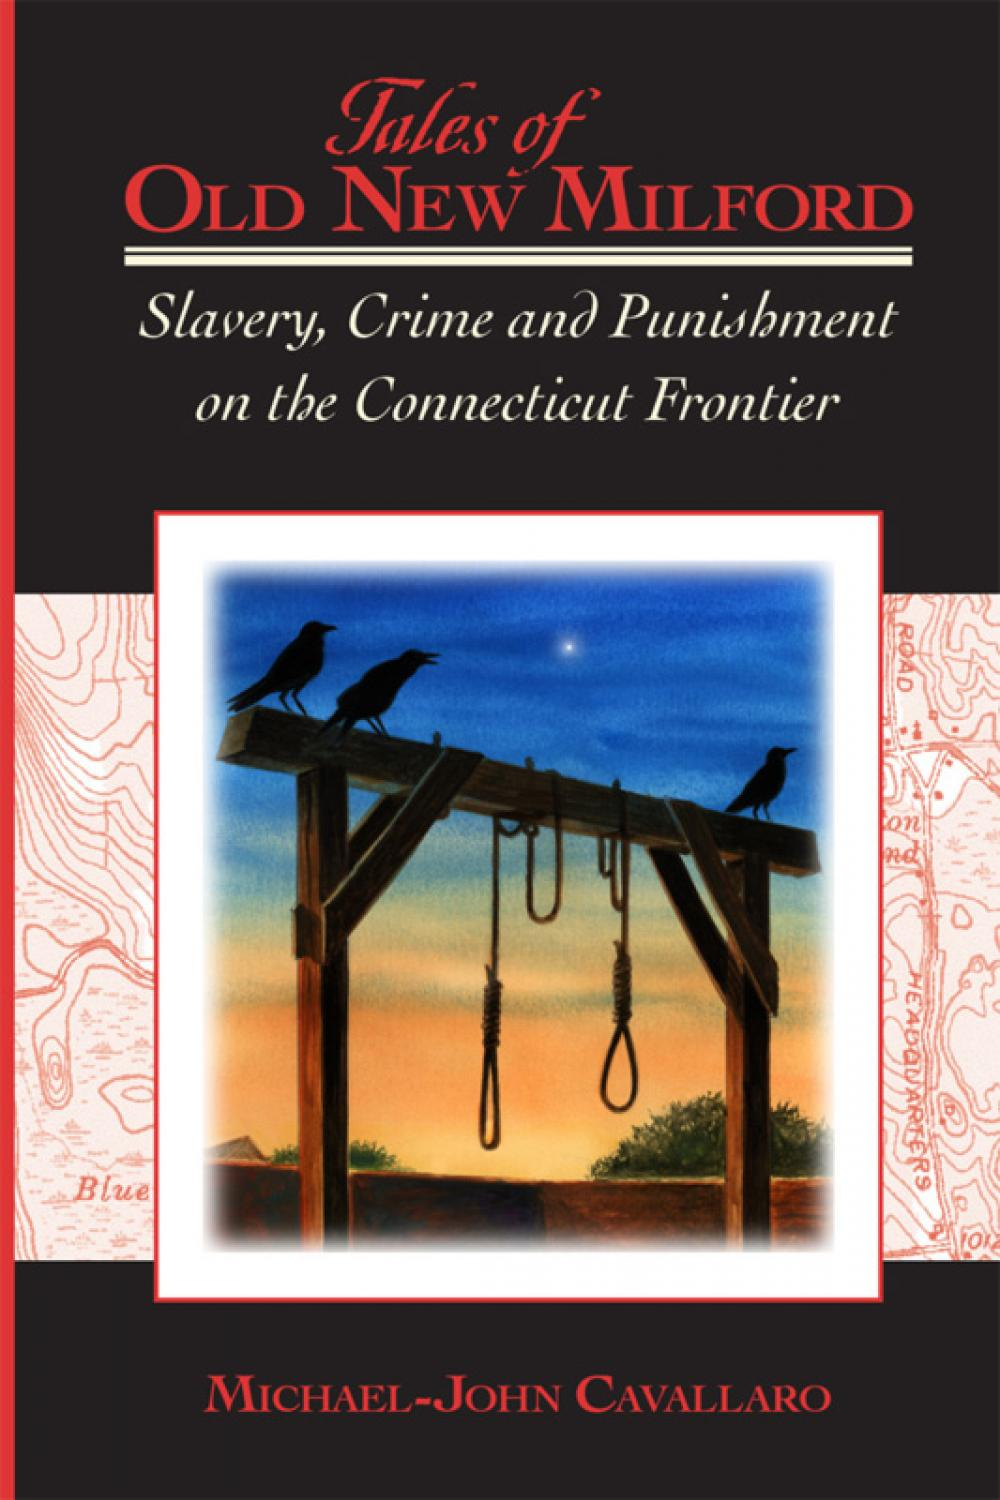 Tales of Old New Milford - Slavery, Crime & Punishment on the Connecticut Frontier